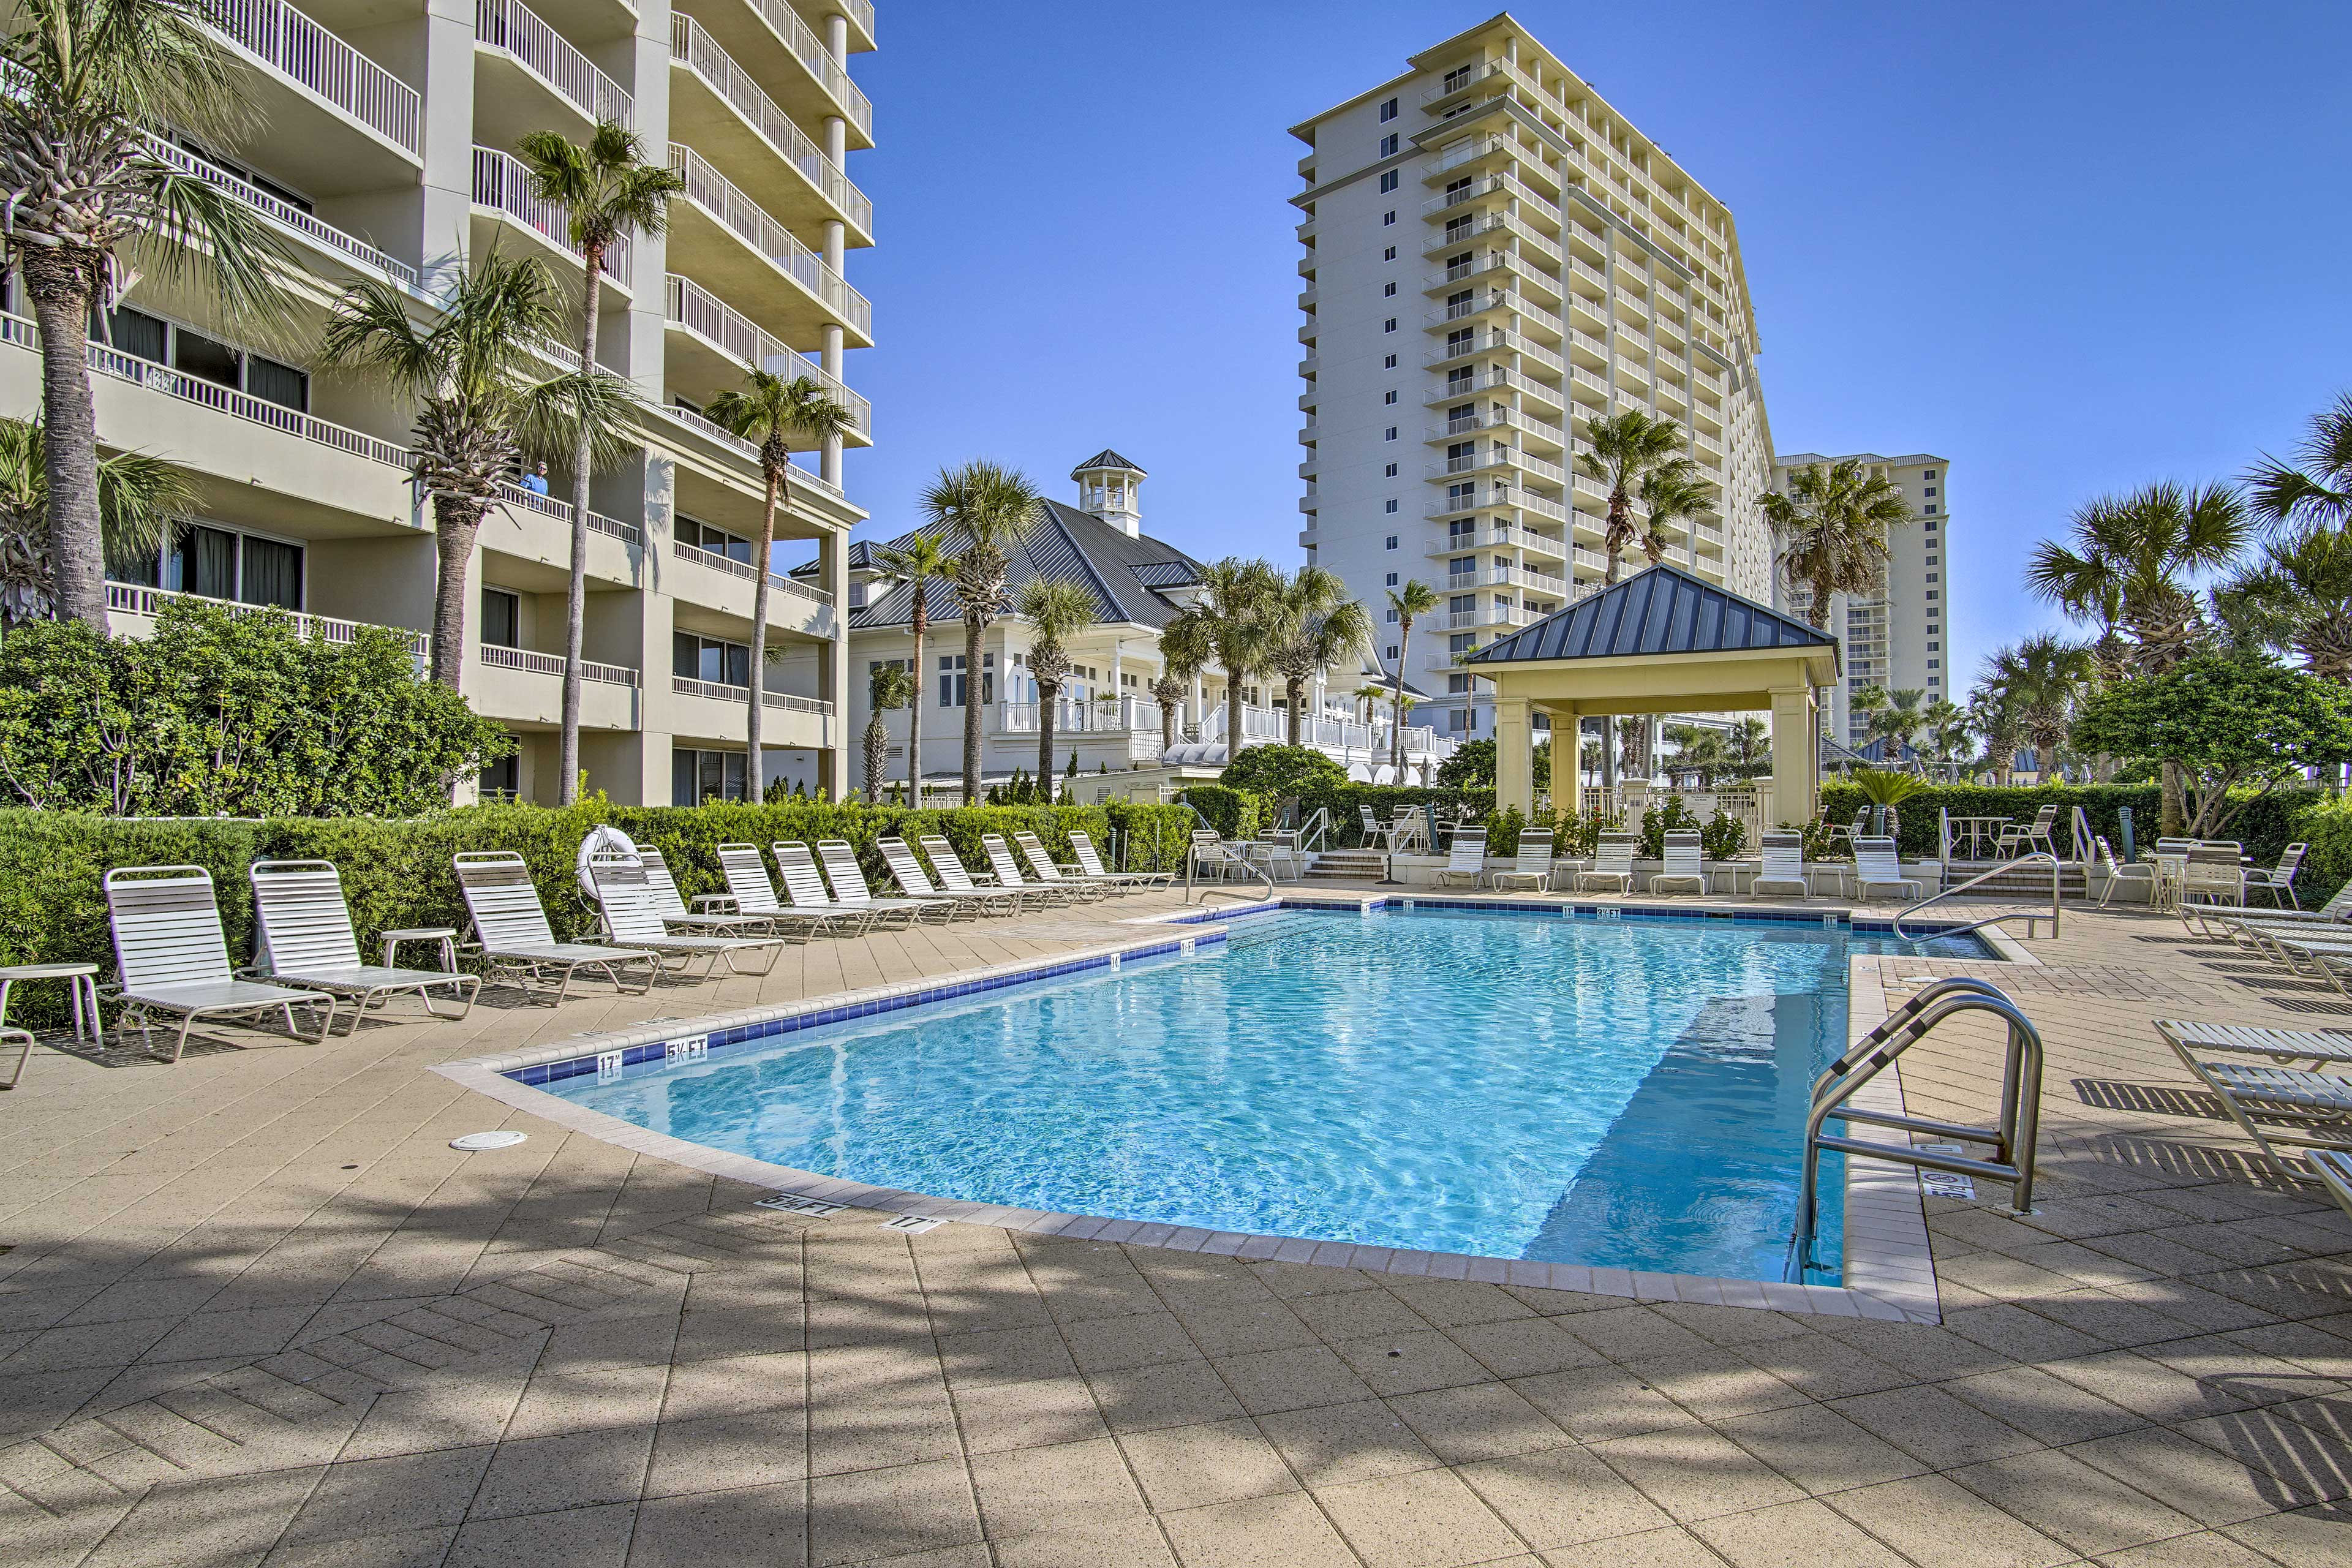 Enjoy access to the amazing amenities at The Beach Club Resort & Spa.